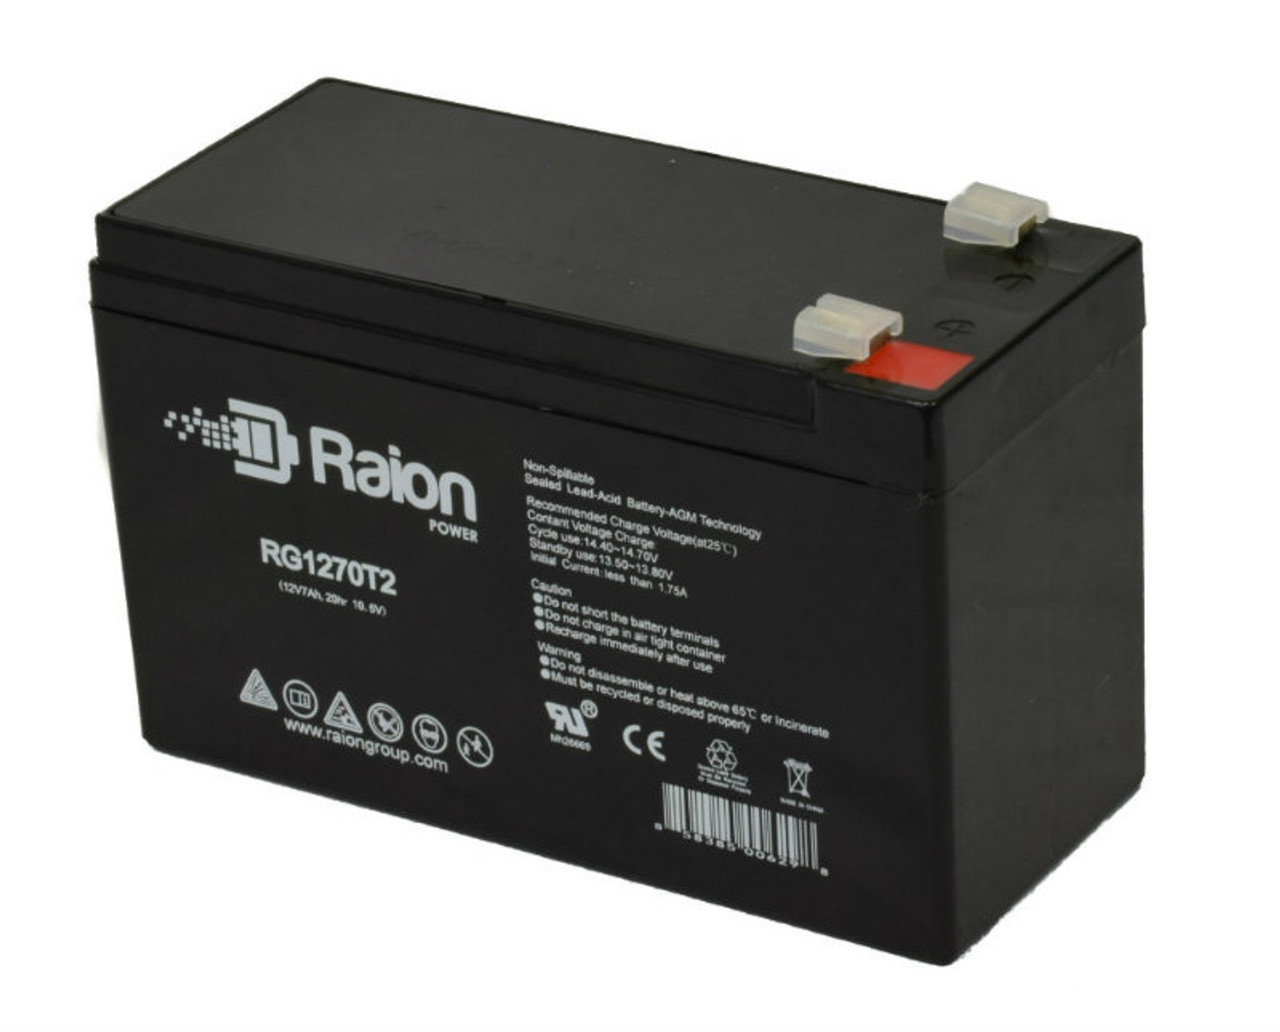 Raion Power RG1270T1 Replacement Battery for Sunnyway SW1270